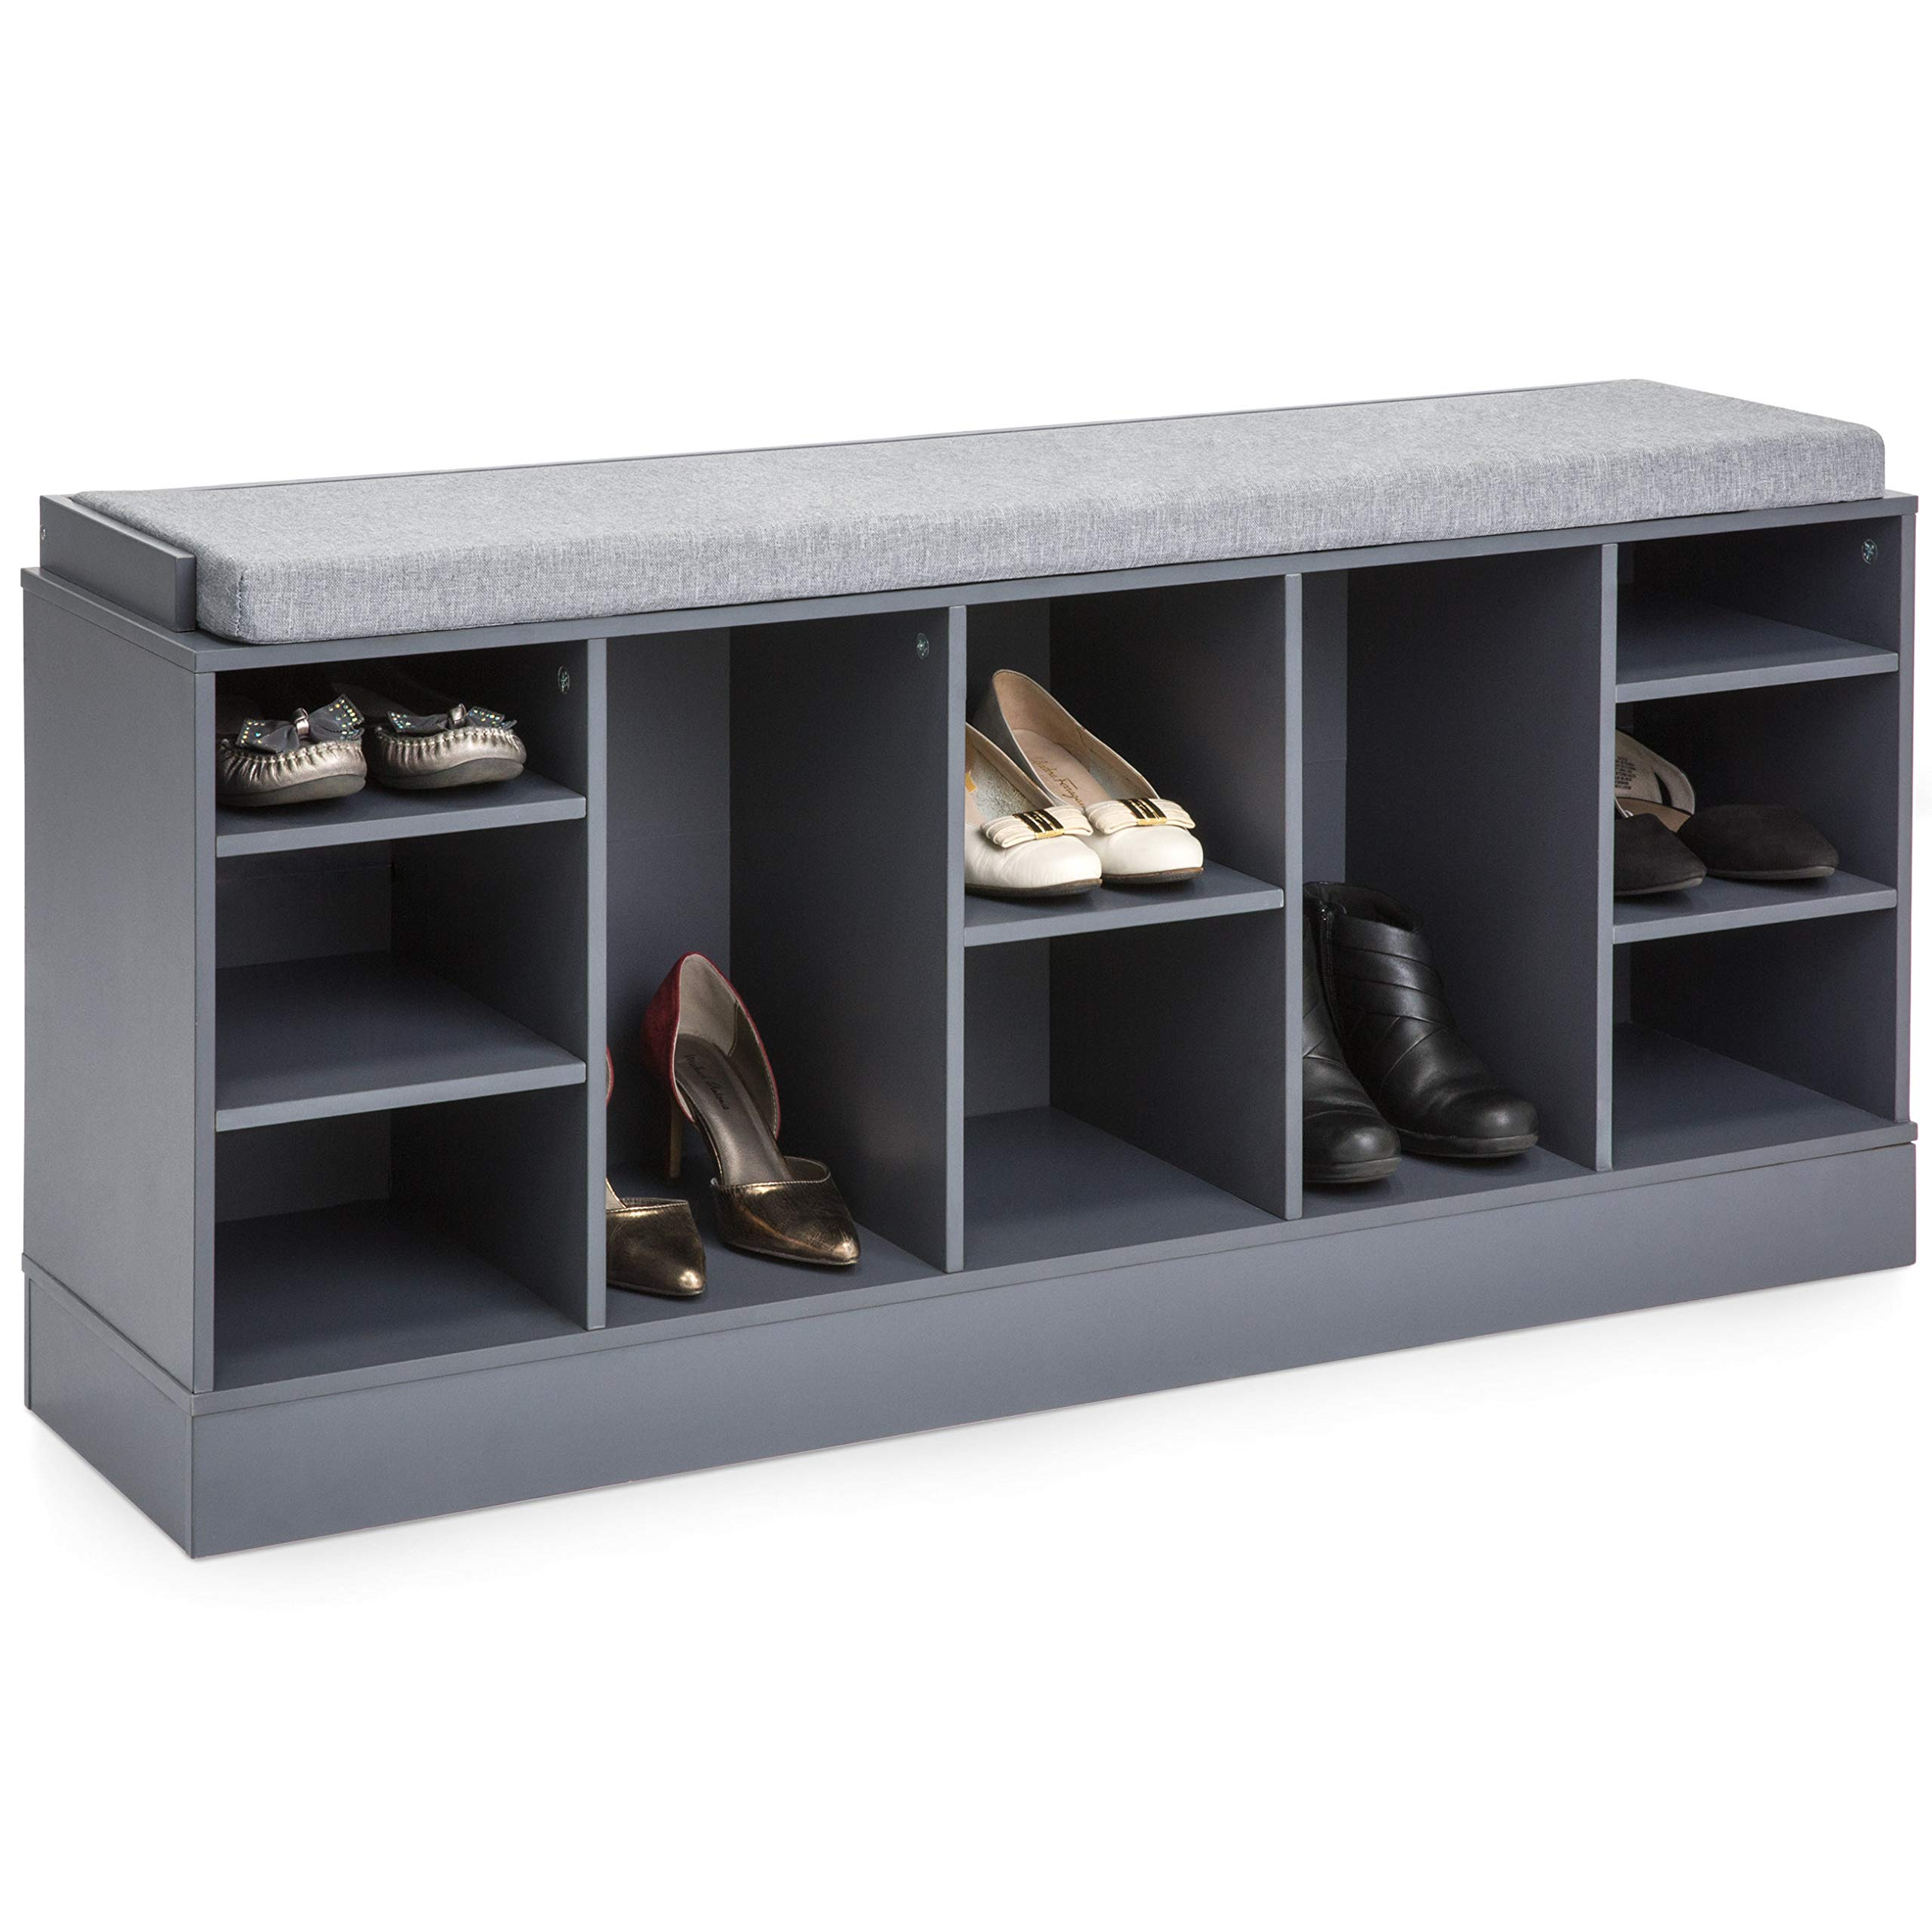 Best Choice Products Multi-Functional Space Saving Organization Storage Shoe Rack Bench for Entryway, Bedroom, Living Room w/Padded Seat, 10 Cubbies, Gray by Best Choice Products